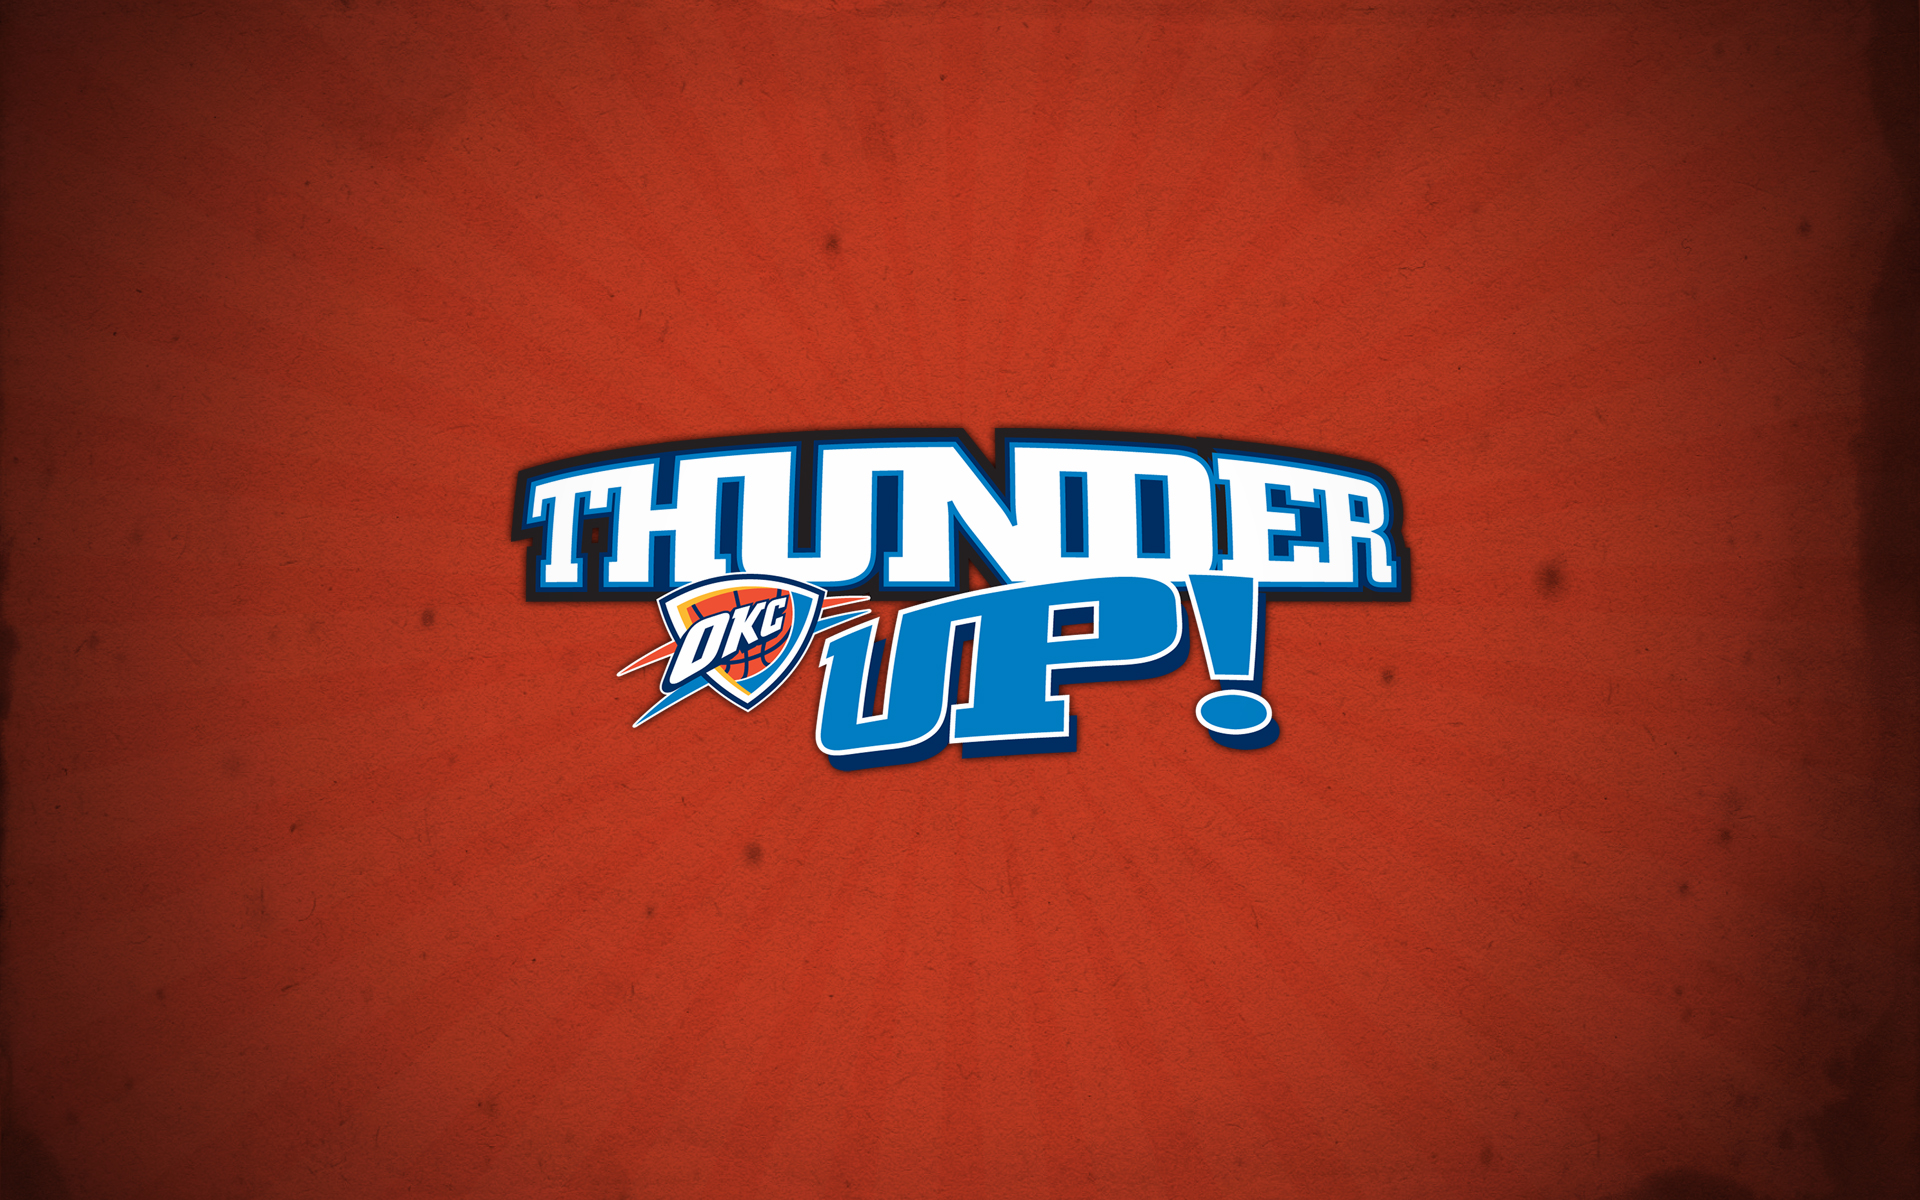 Okc Wallpaper Posted By Ryan Walker